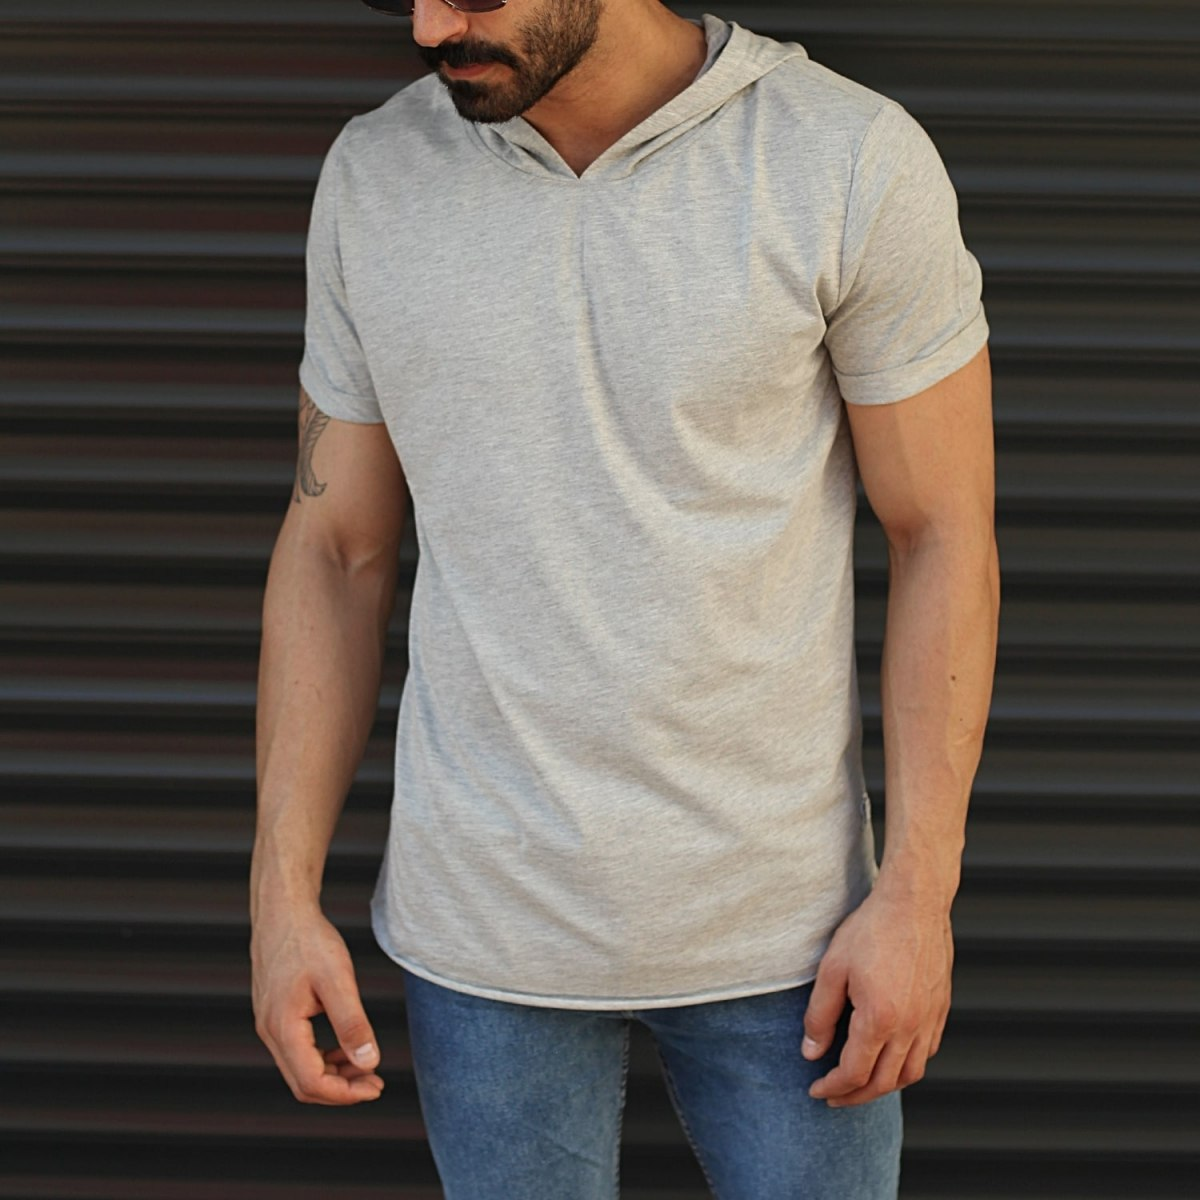 Men's Hooded Longline Basic T-Shirt Gray Mv Premium Brand - 1